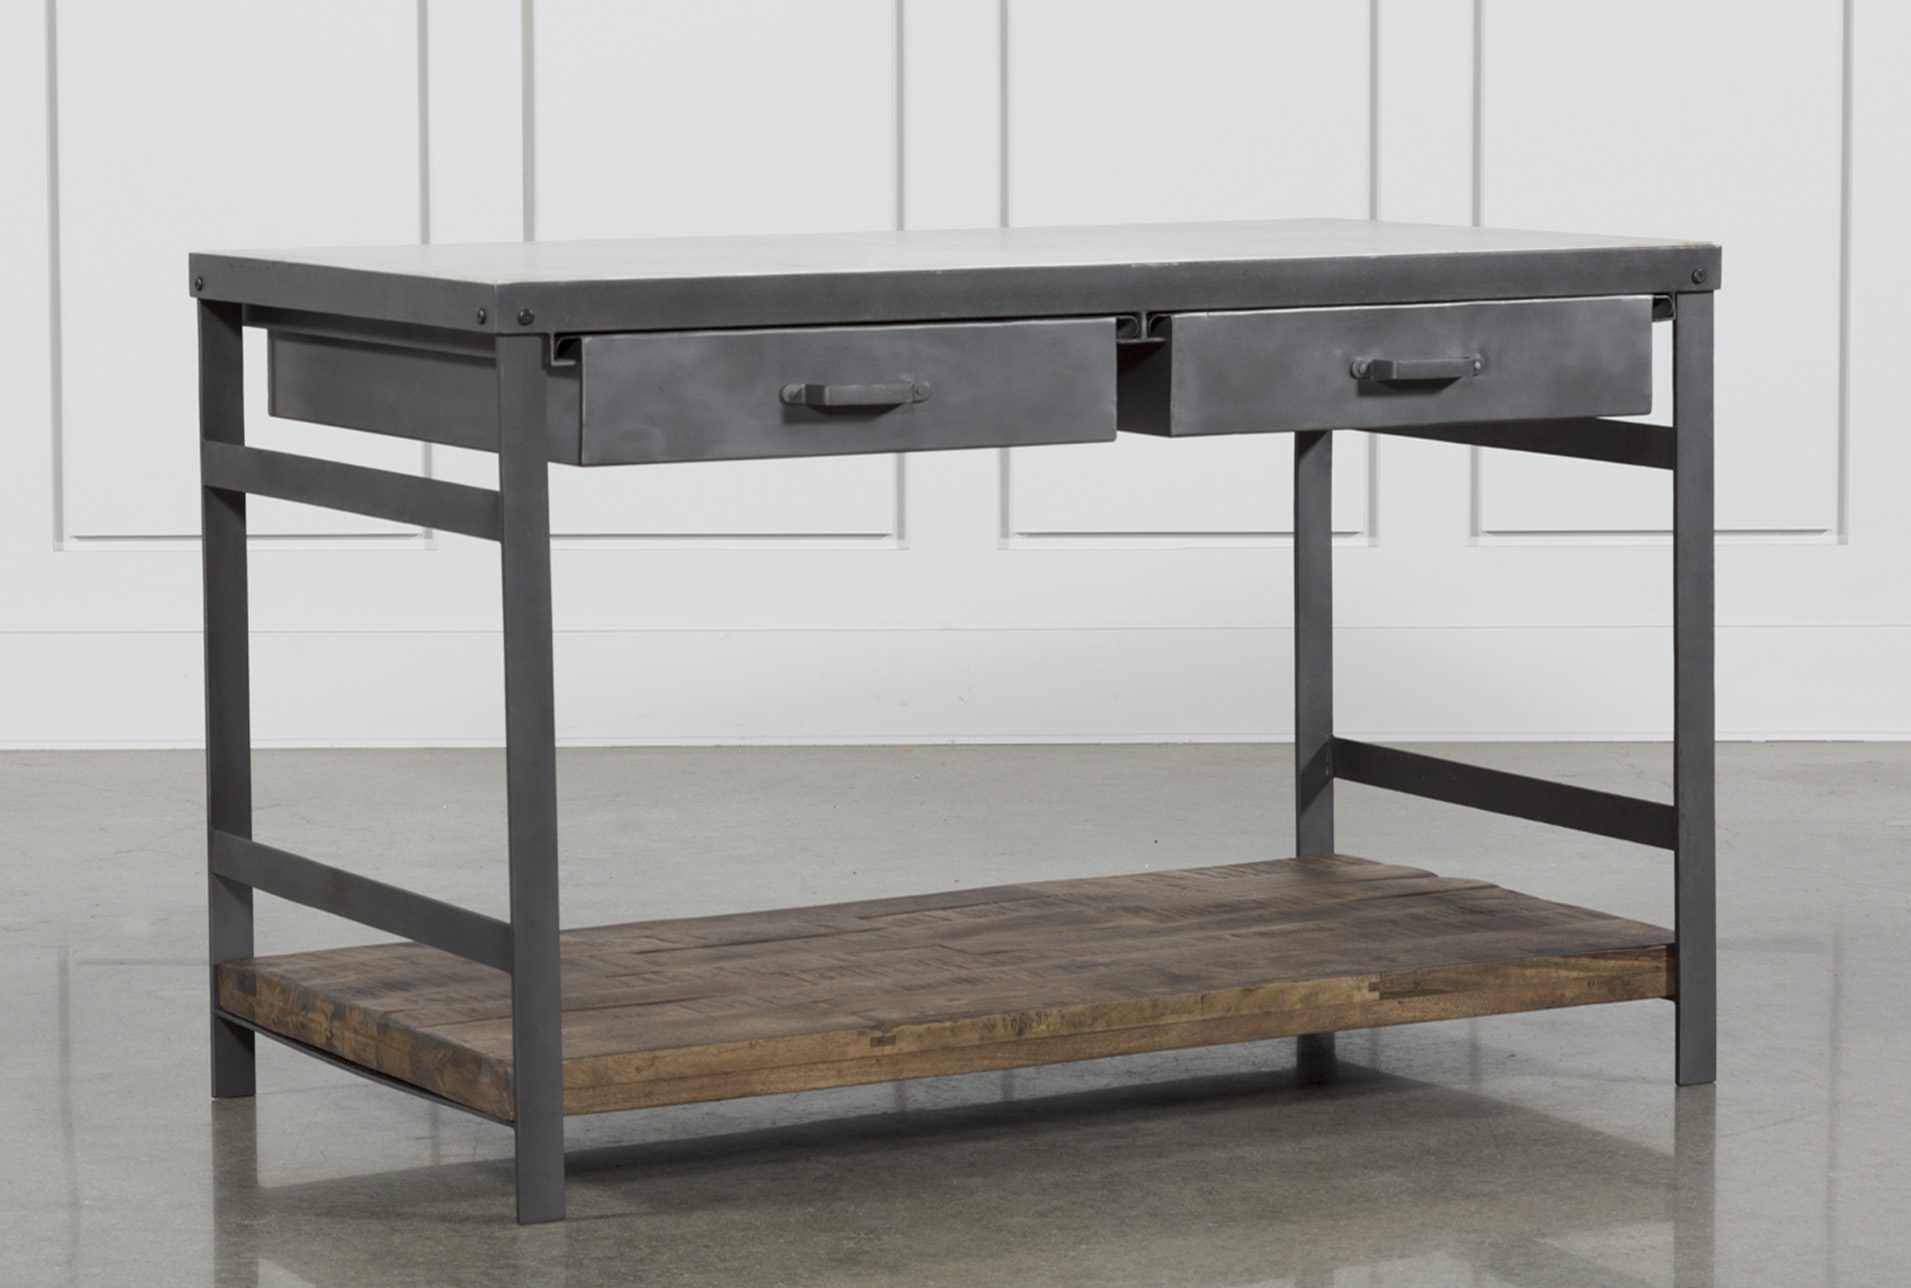 Cooks Kitchen Island (Qty: 1) has been successfully added to your Cart. & Cooks Kitchen Island | Living Spaces